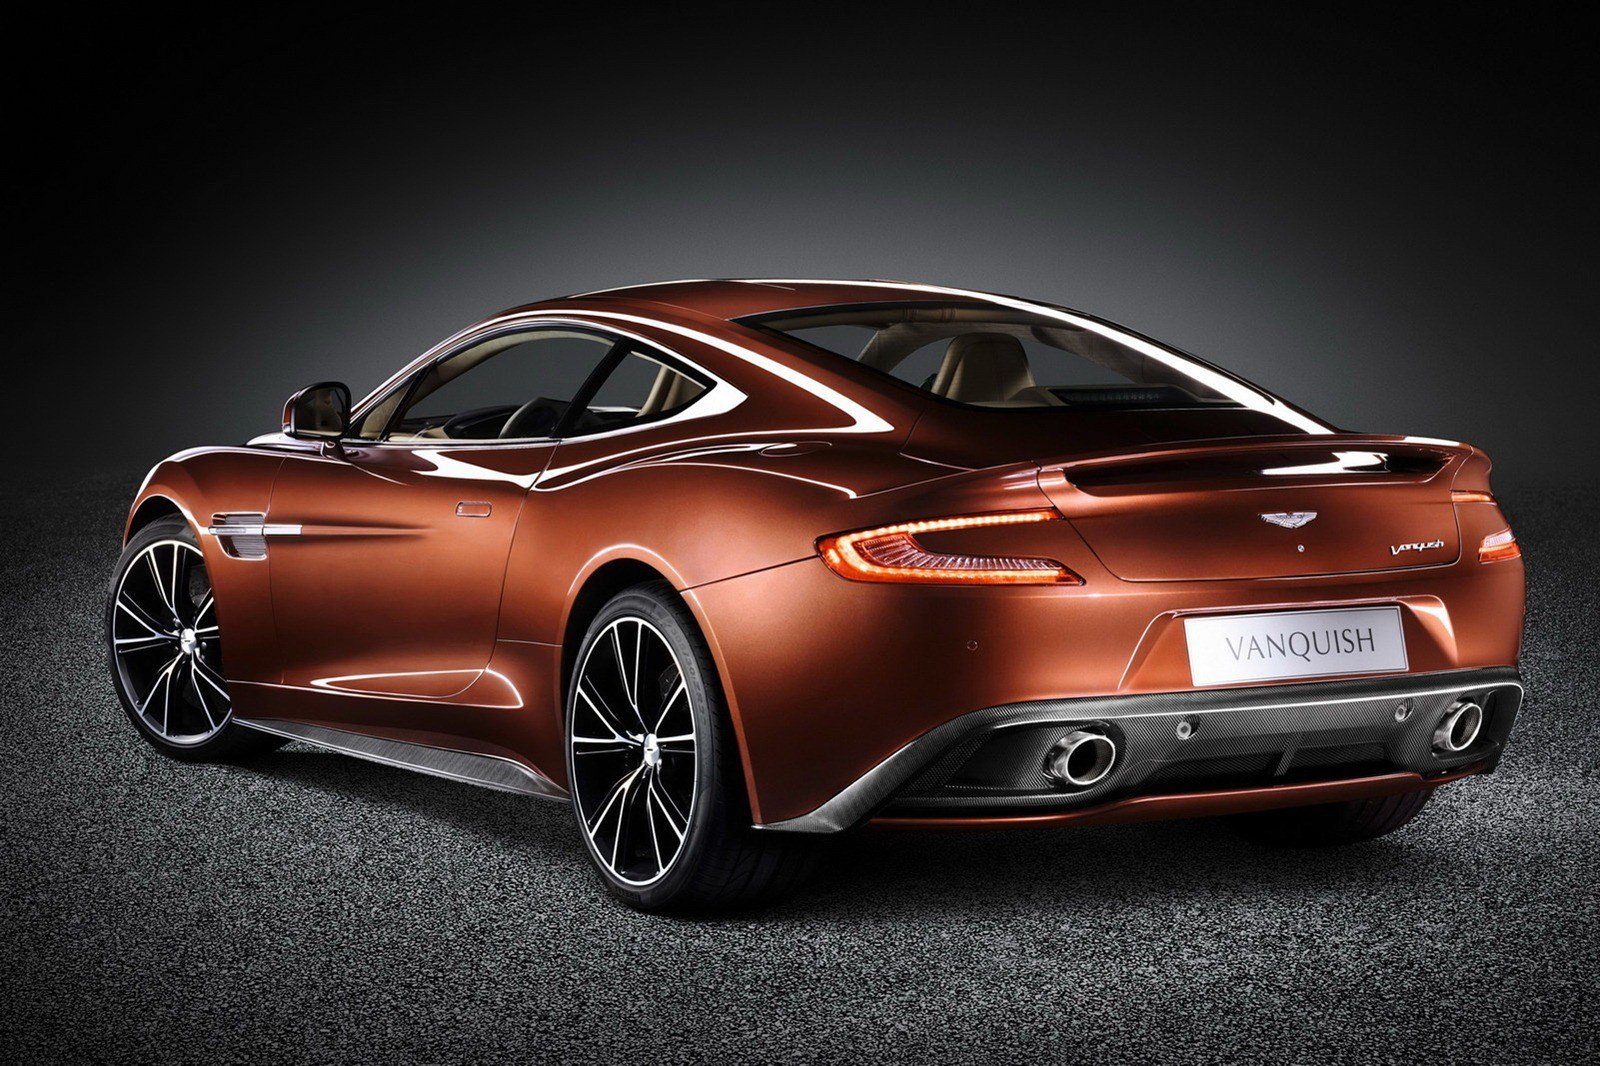 Latest Aston Martin Vanquish Specs Photos 2012 2013 2014 Free Download